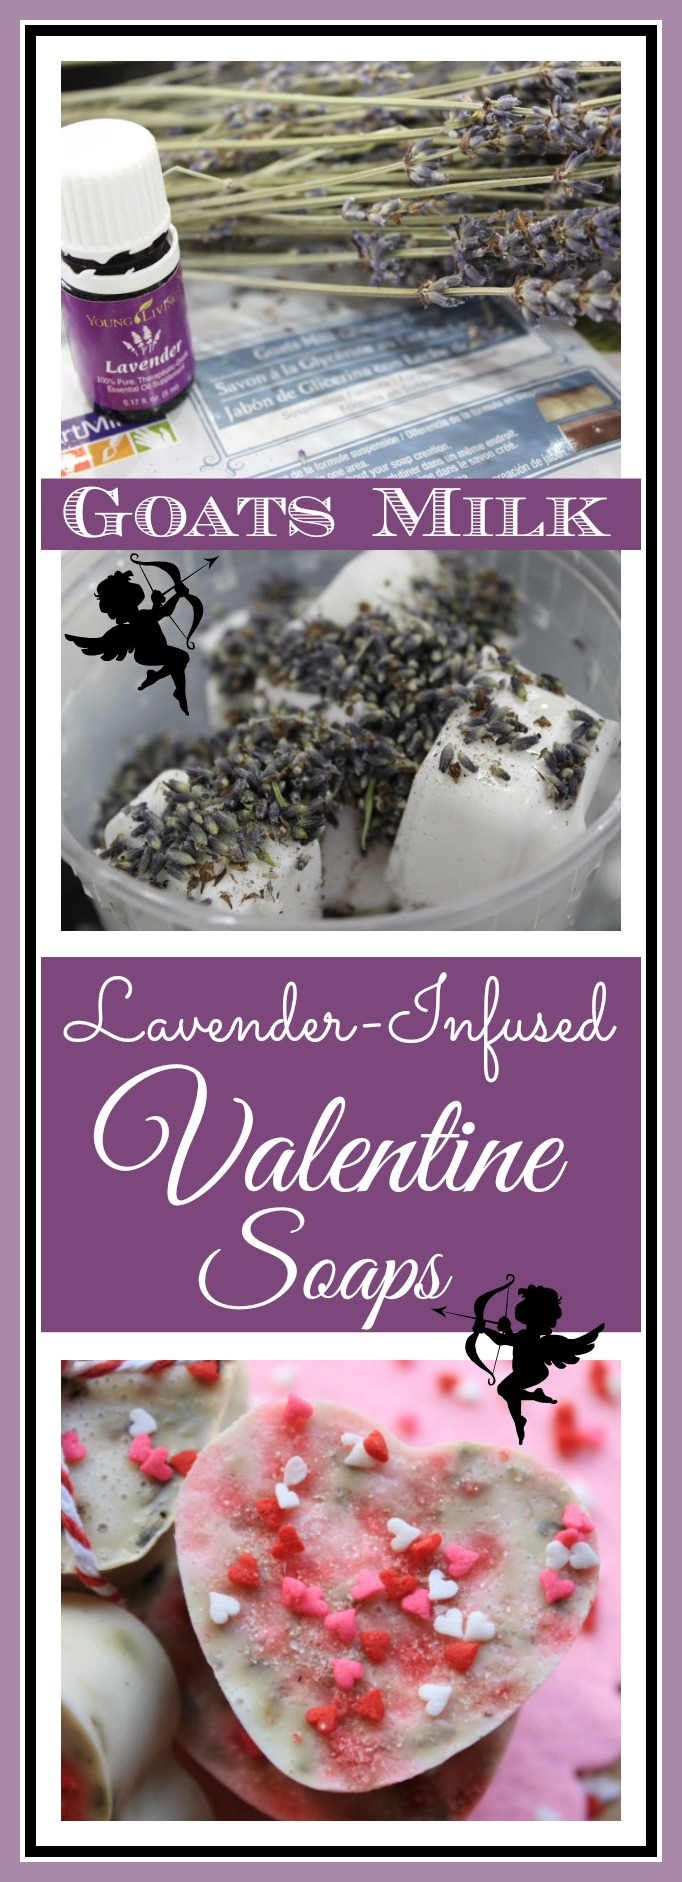 How to Make Heart Shaped Lavender Infused Goats Milk Soap | The Everyday Home | www.everydayhomeblog.com